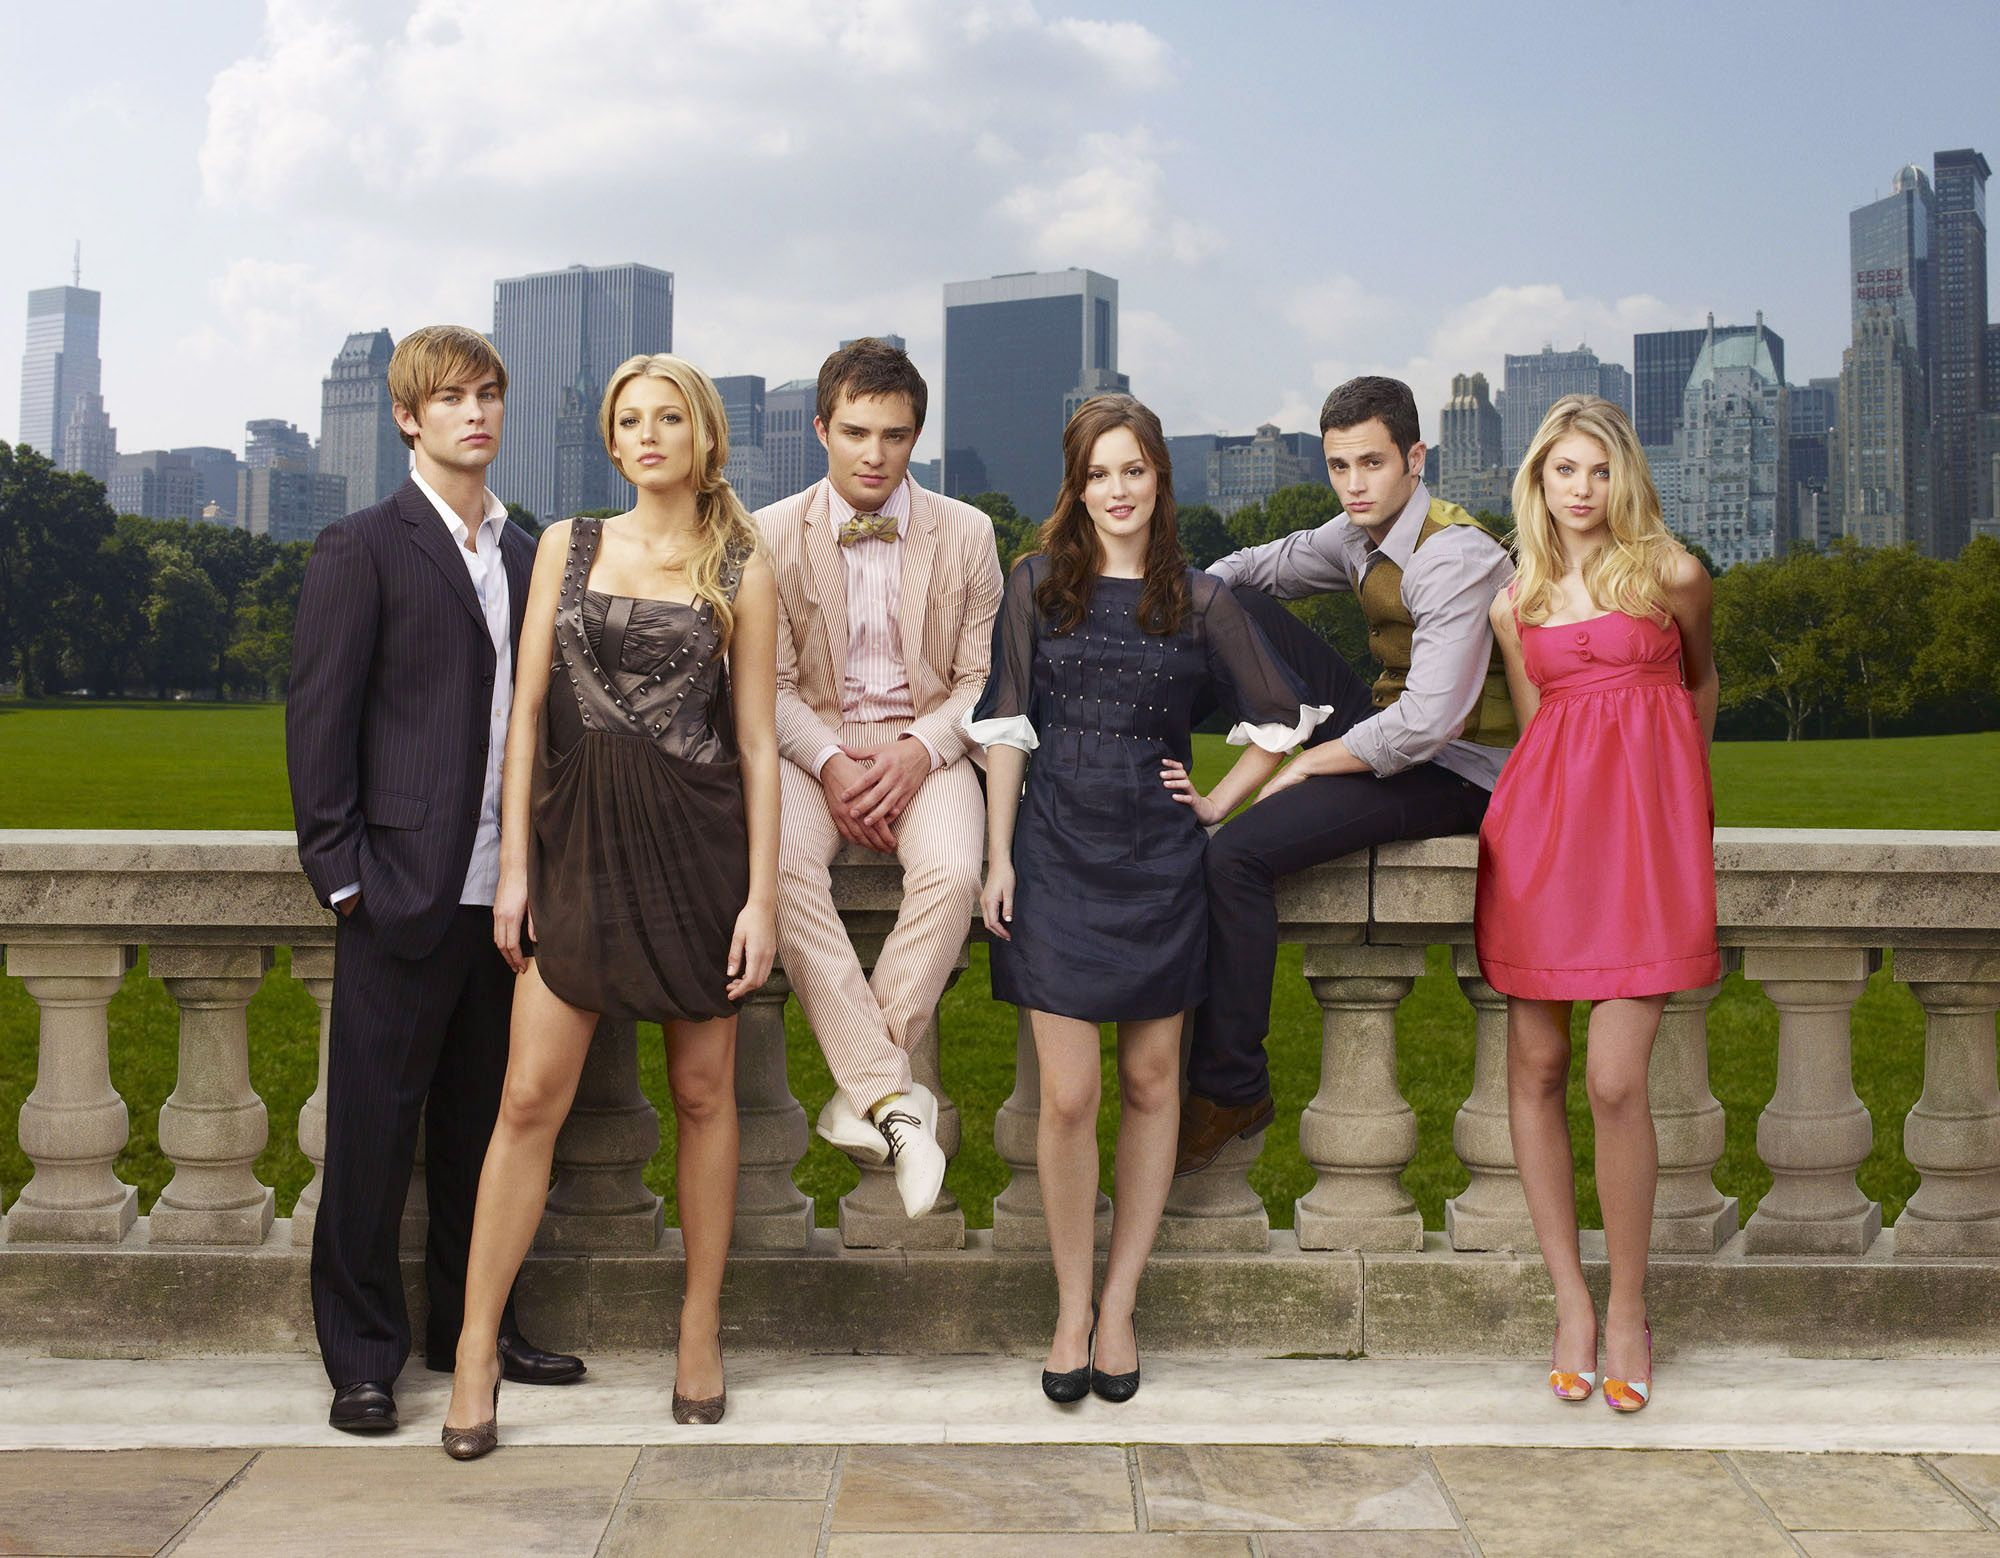 'Gossip Girl' Is Getting a Reboot, But Which Original Cast Members Are Returning?